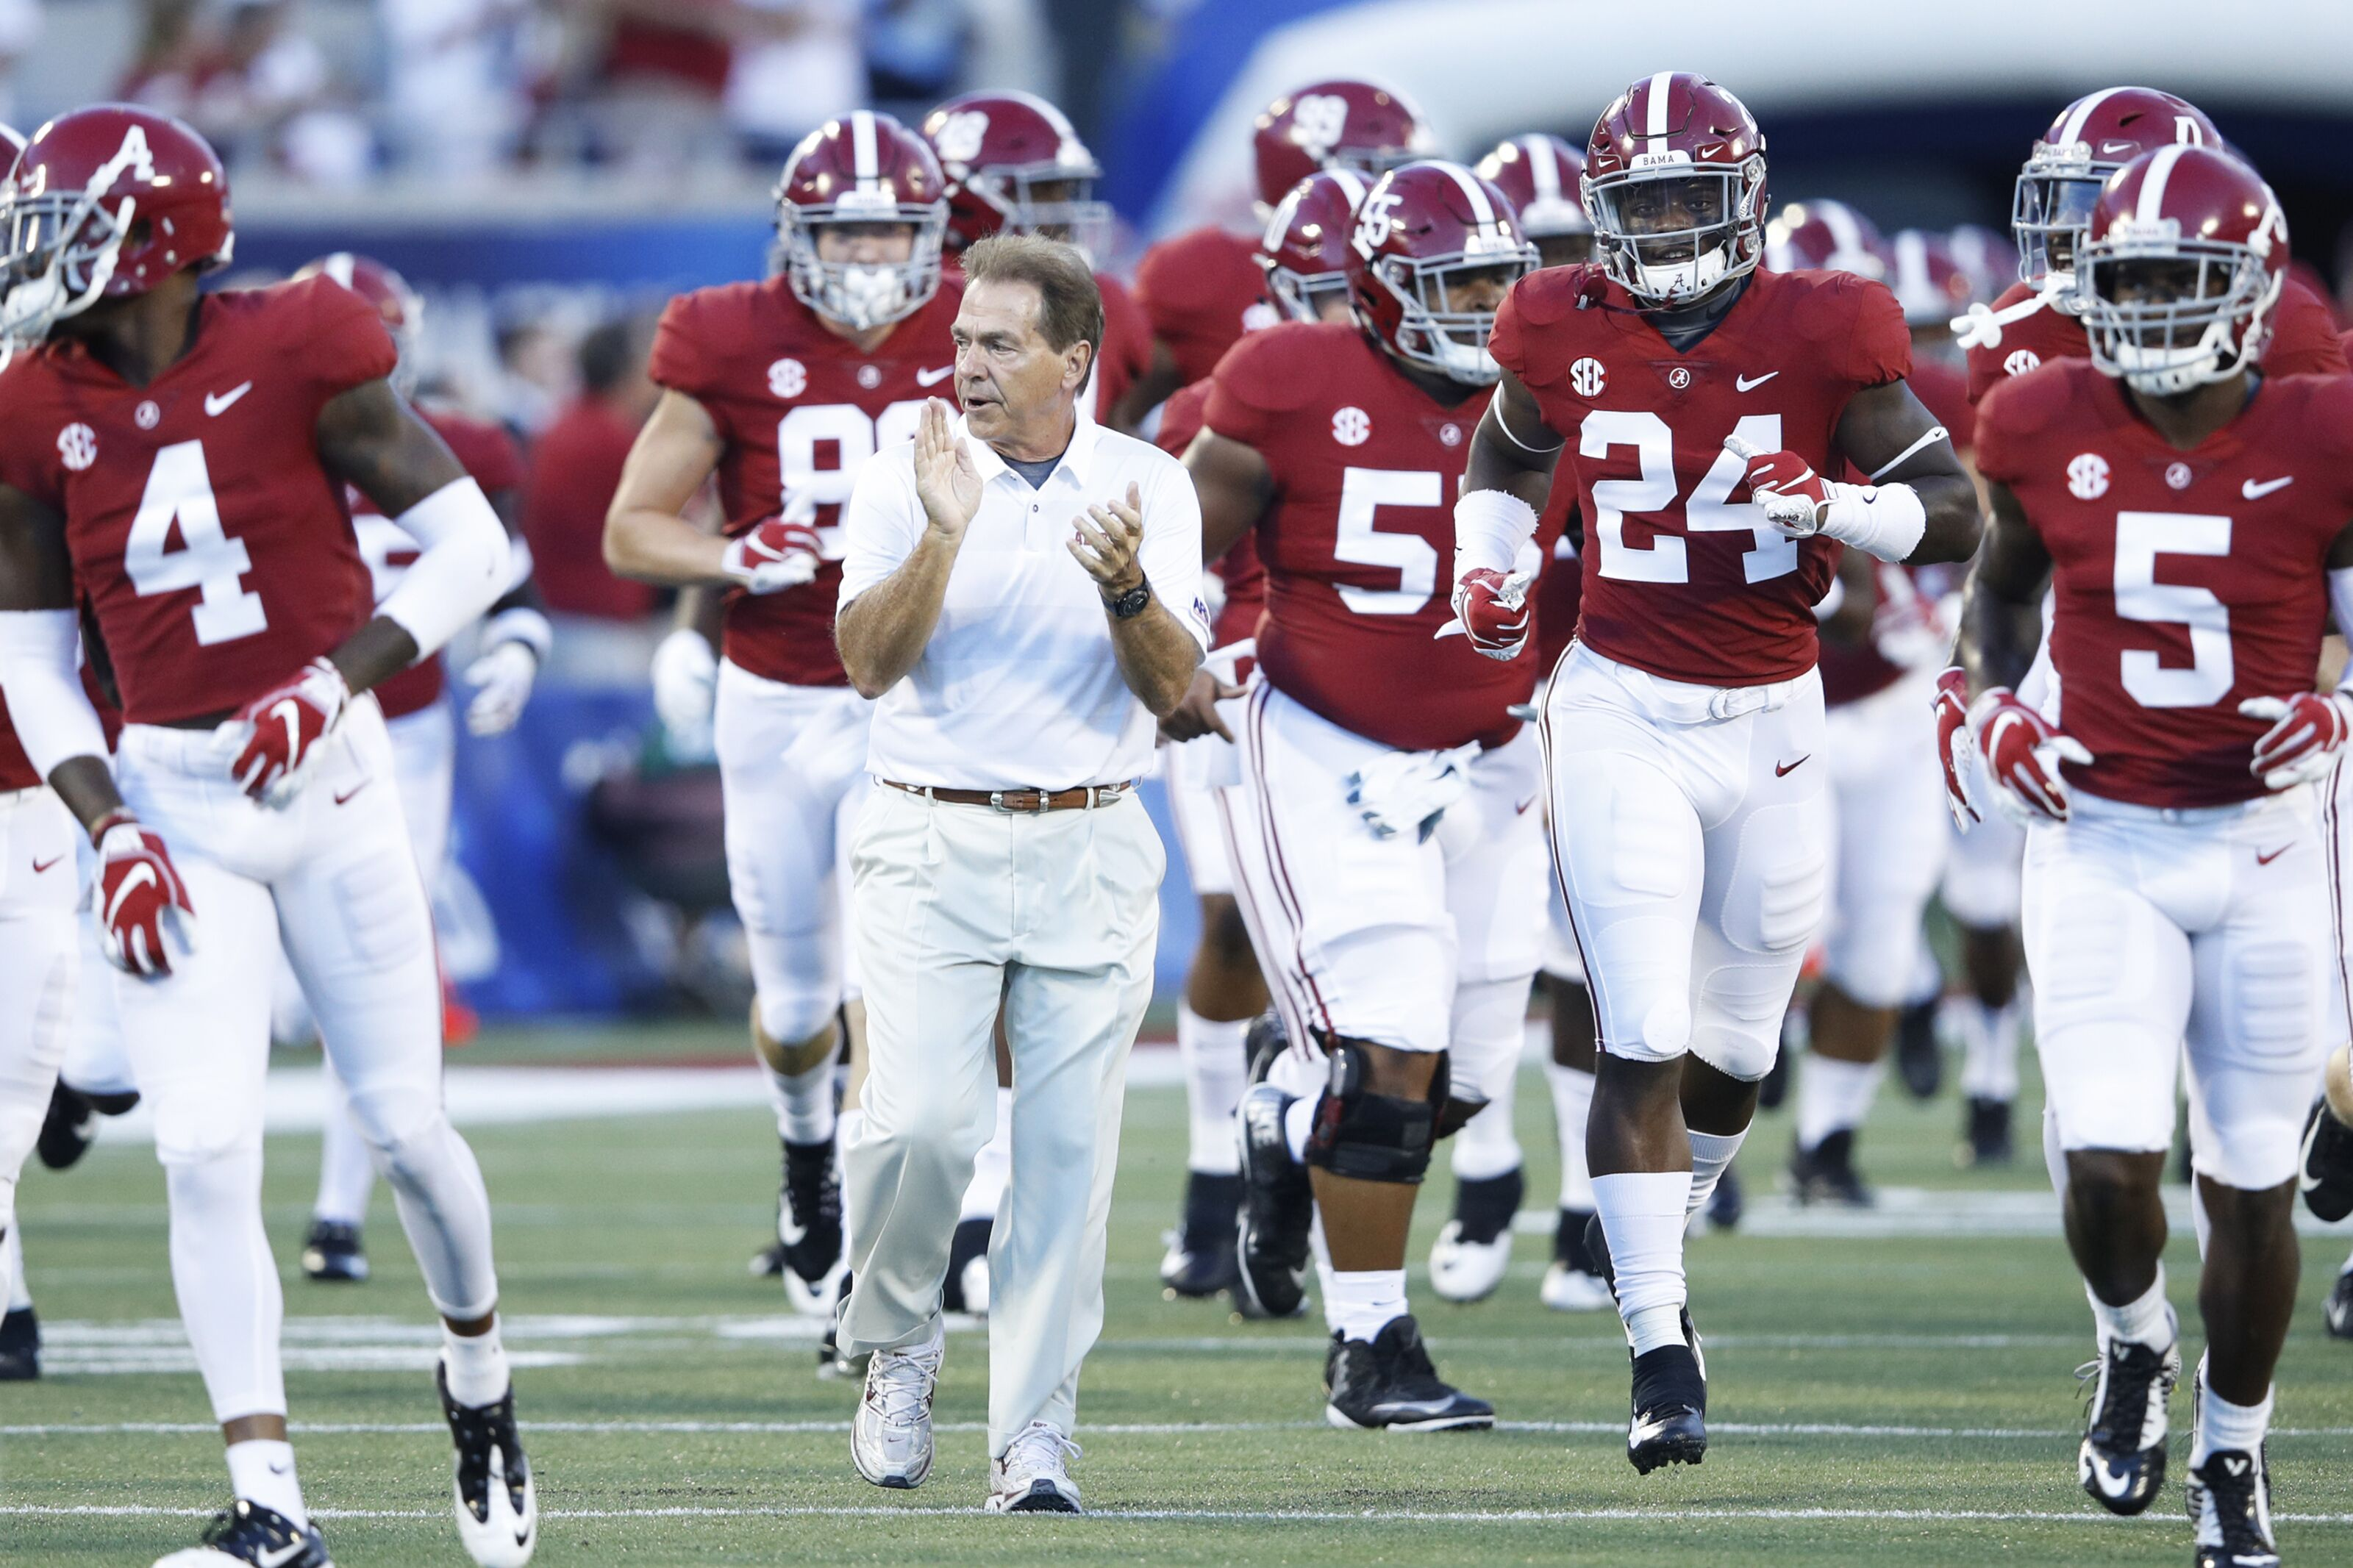 Alabama Football: Crimson Tide will have a youth movement in 2019